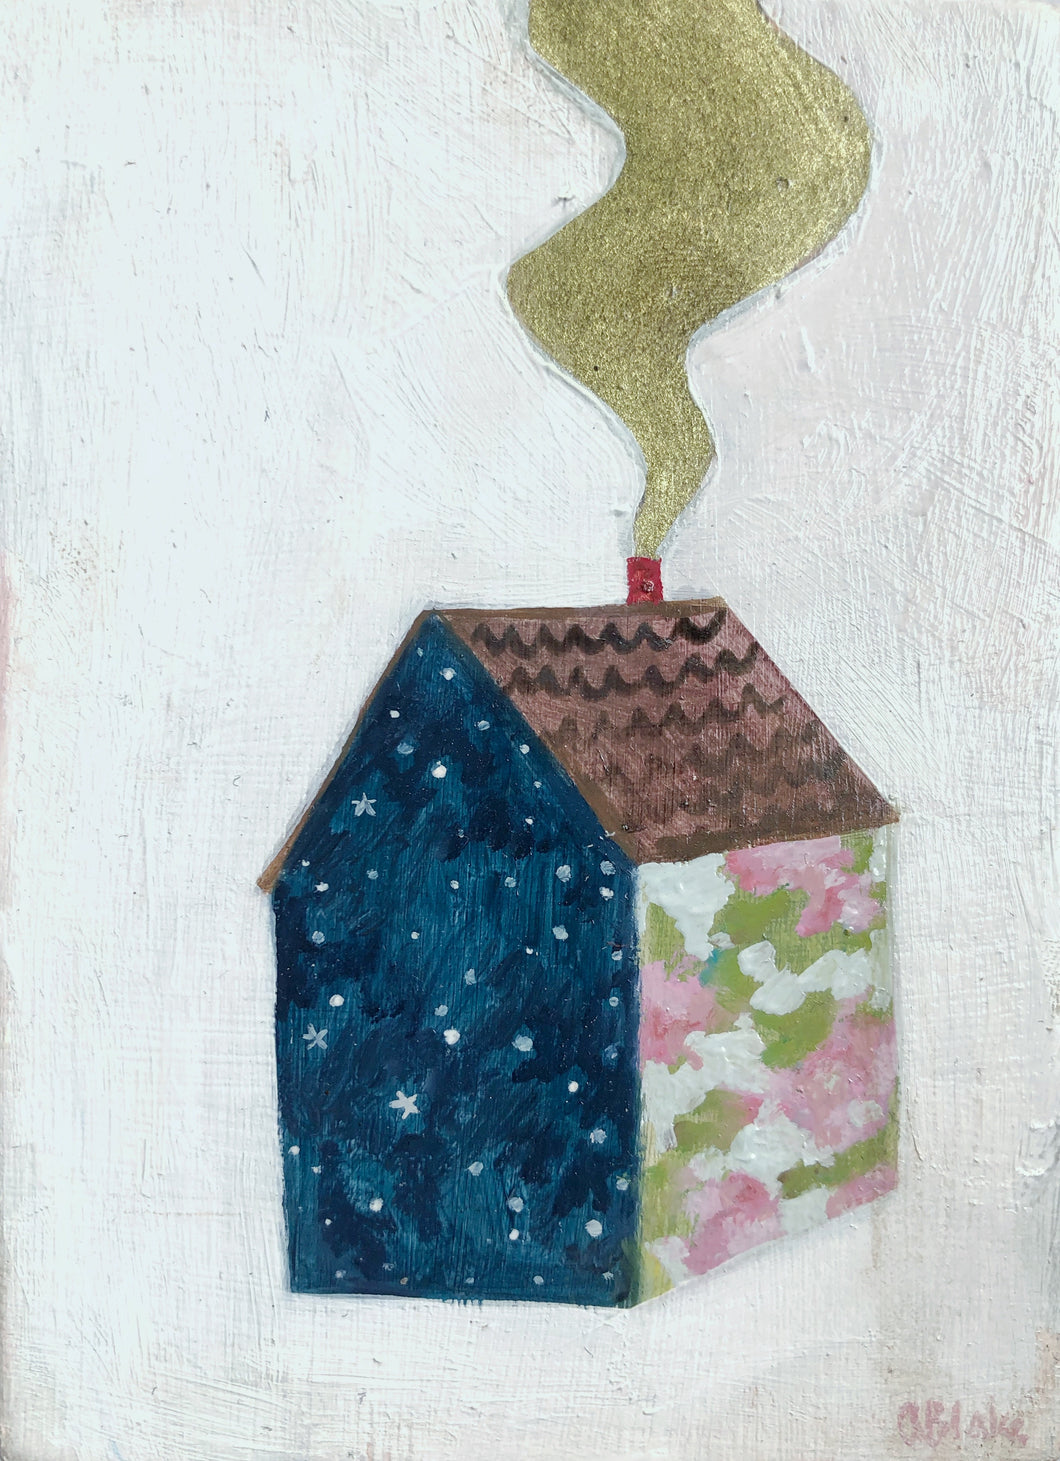 A home made of spring and starlight